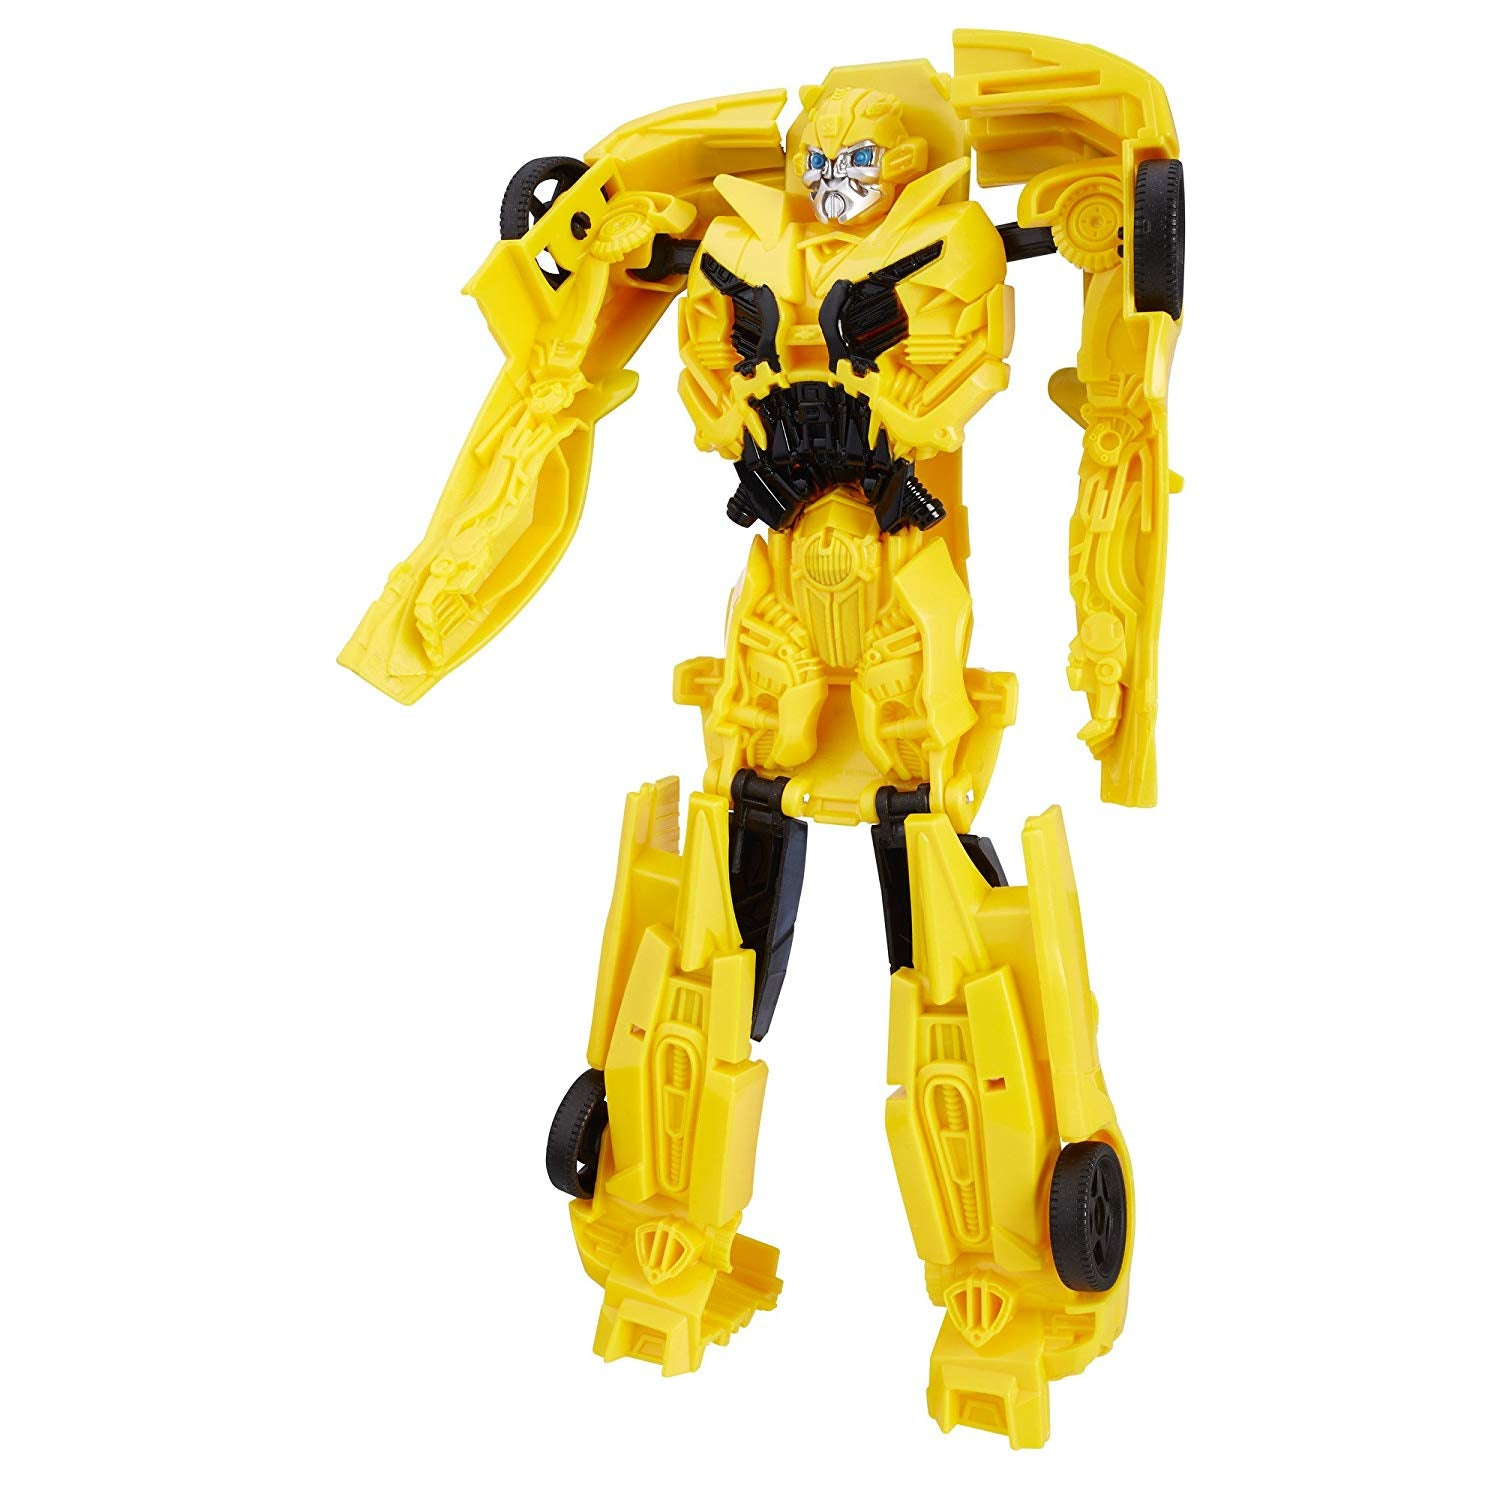 Transformers The Last Knight: Bumblebee Titan Changer Figure by Hasbro